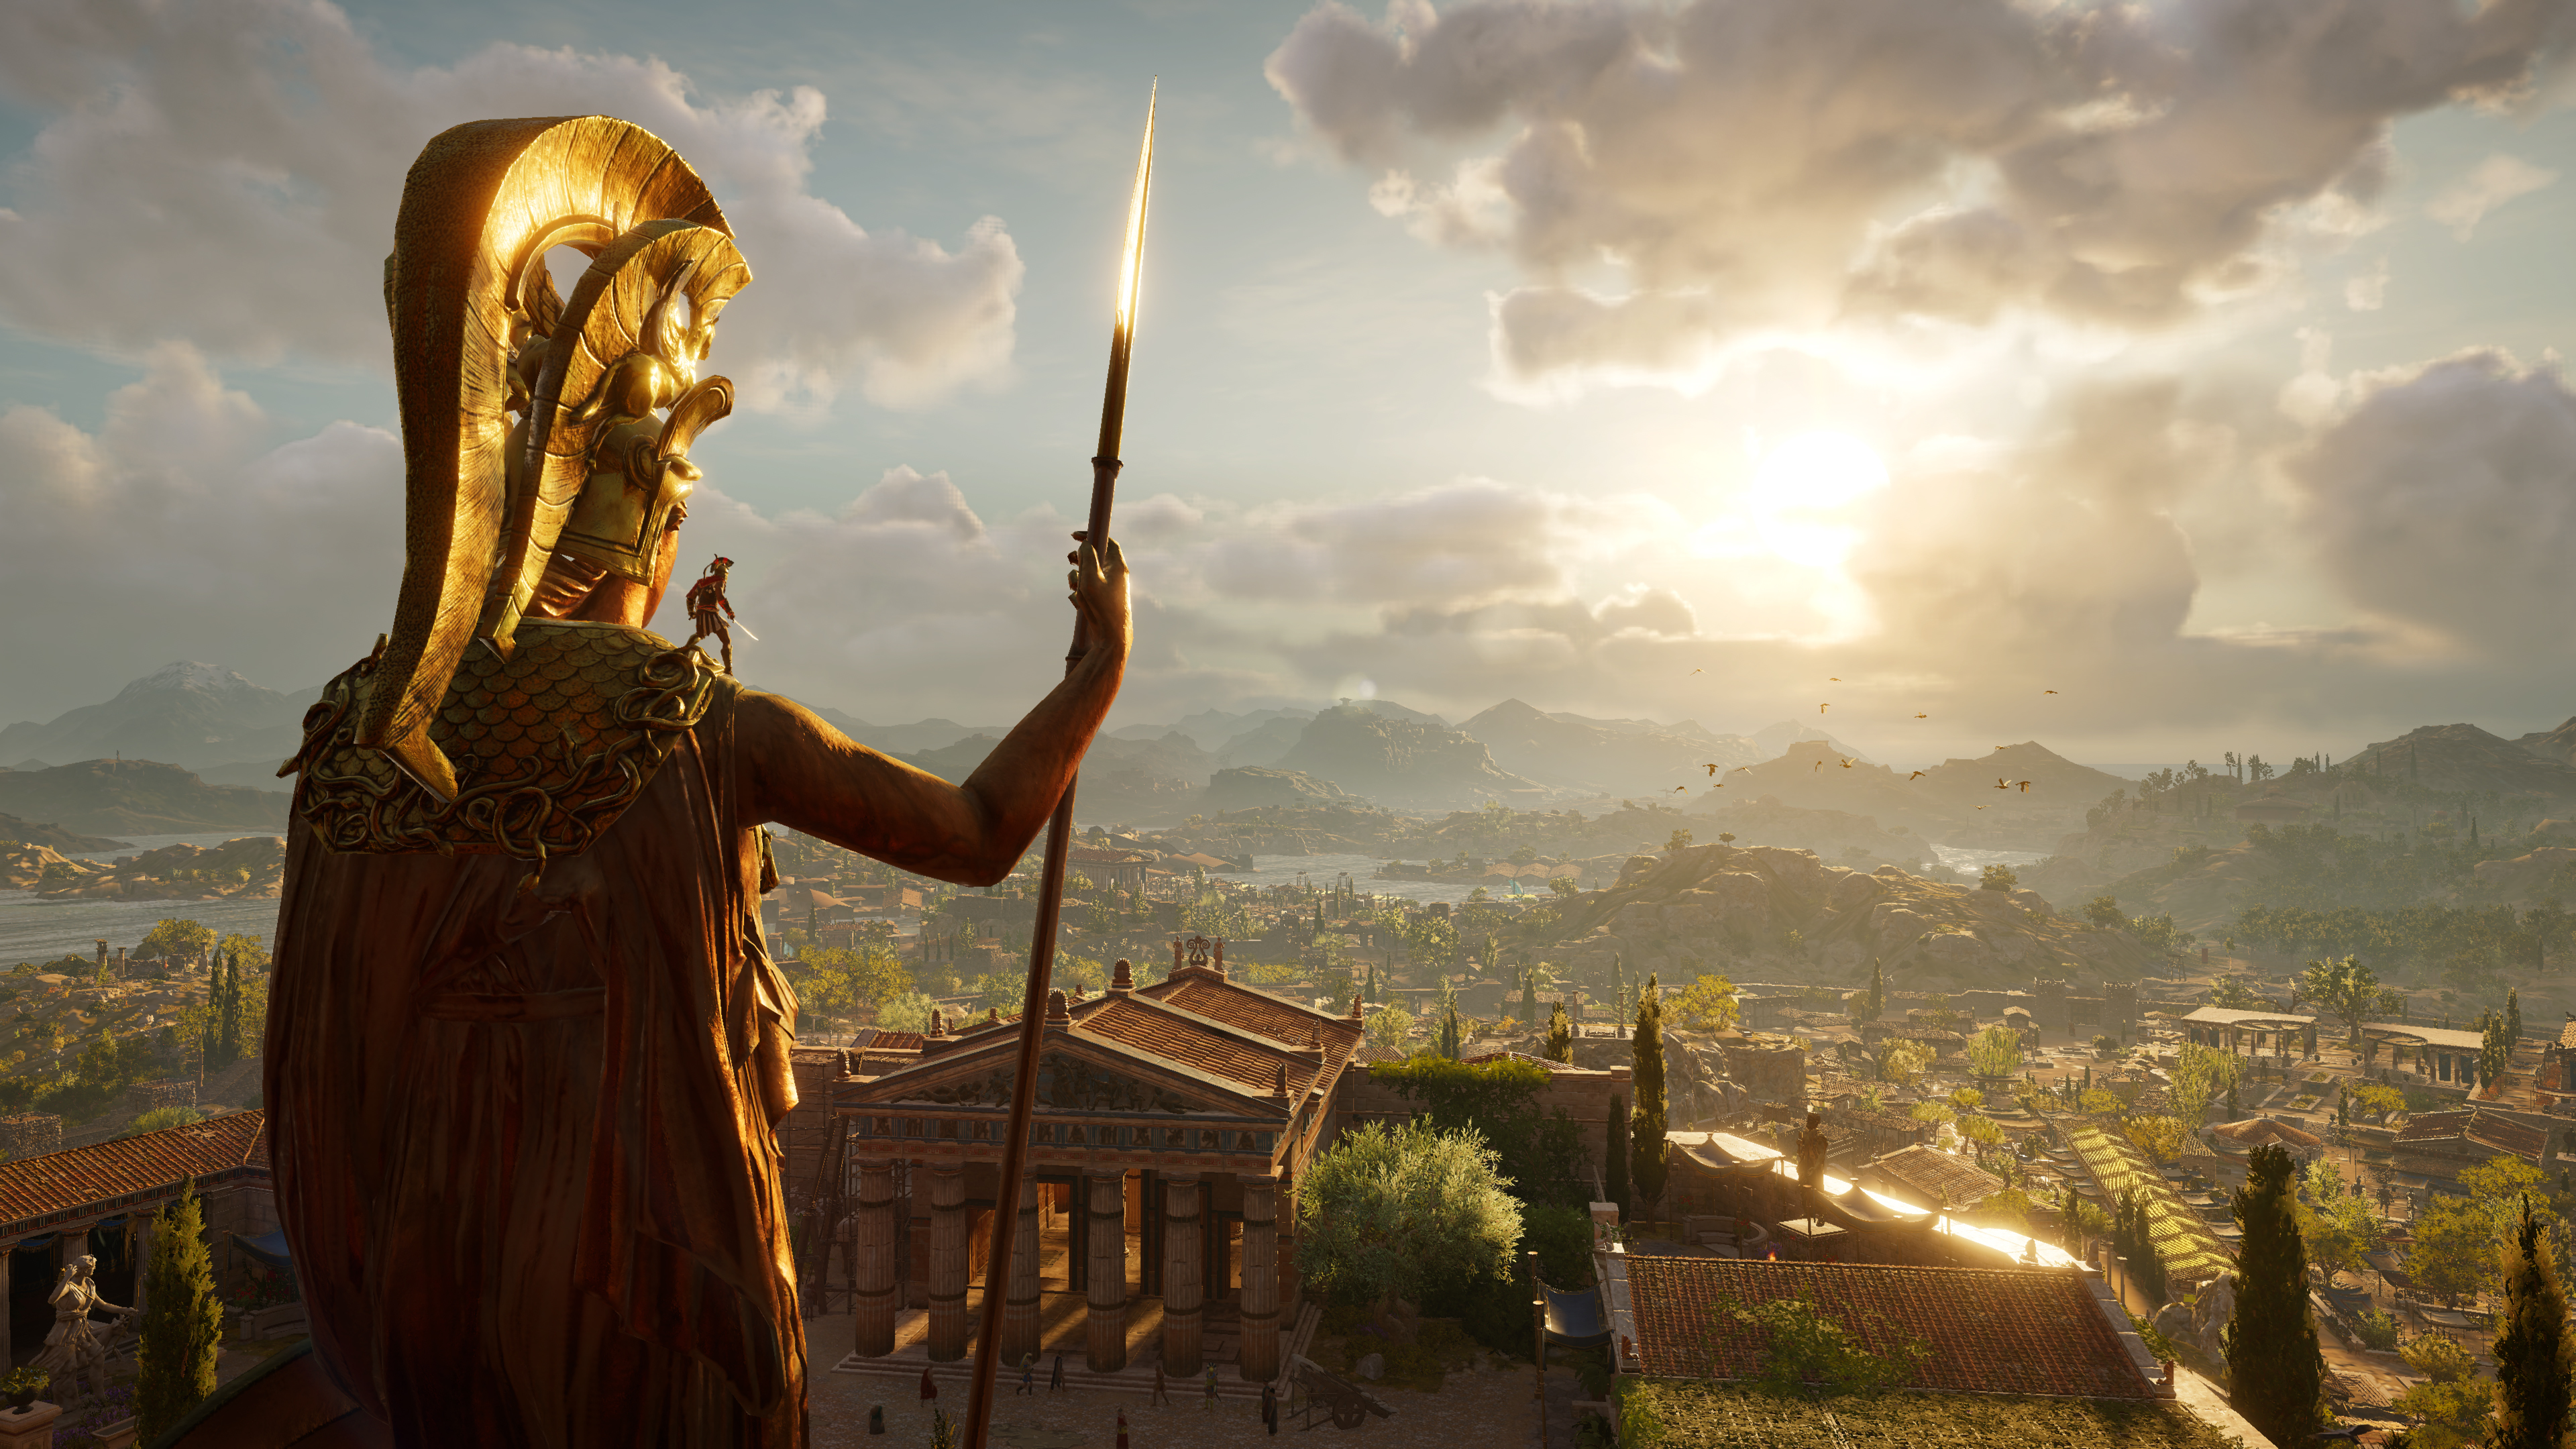 Assassins_Creed_Odyssey_screen_GreeceEstablishing_E3_110618_230pm_1528723943